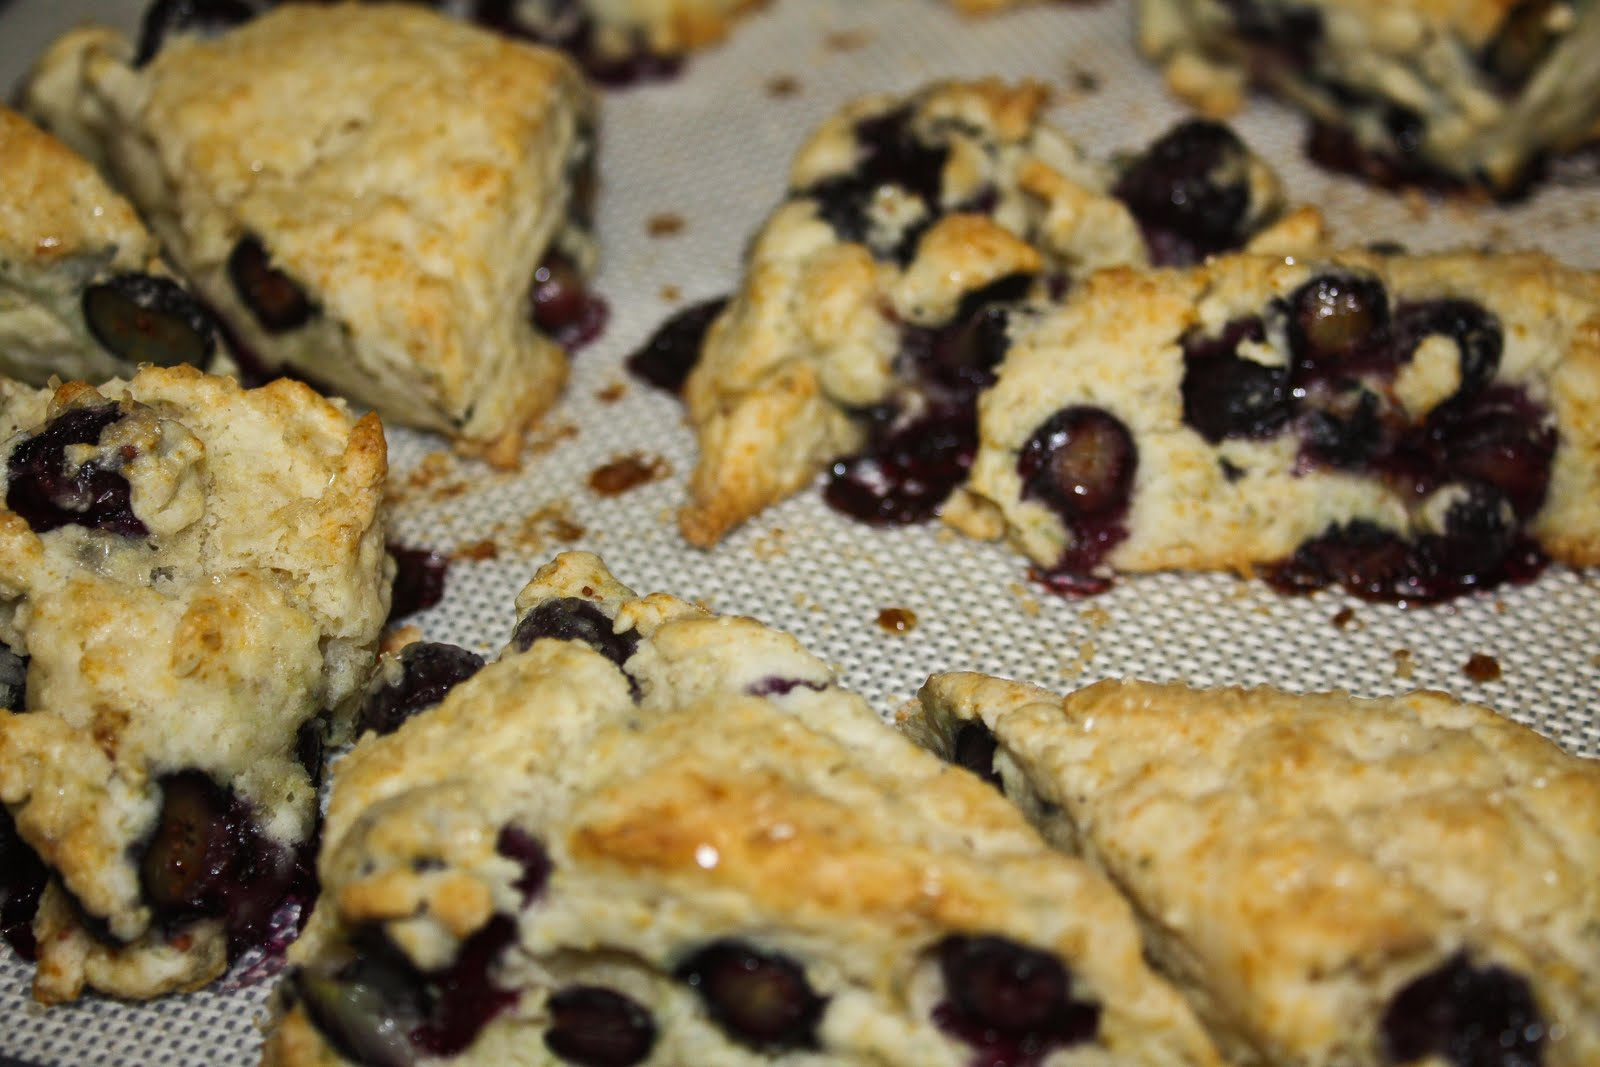 ... : Delish: COMFORT FOOD, PART I: Blueberry Scones with Lemon Glaze